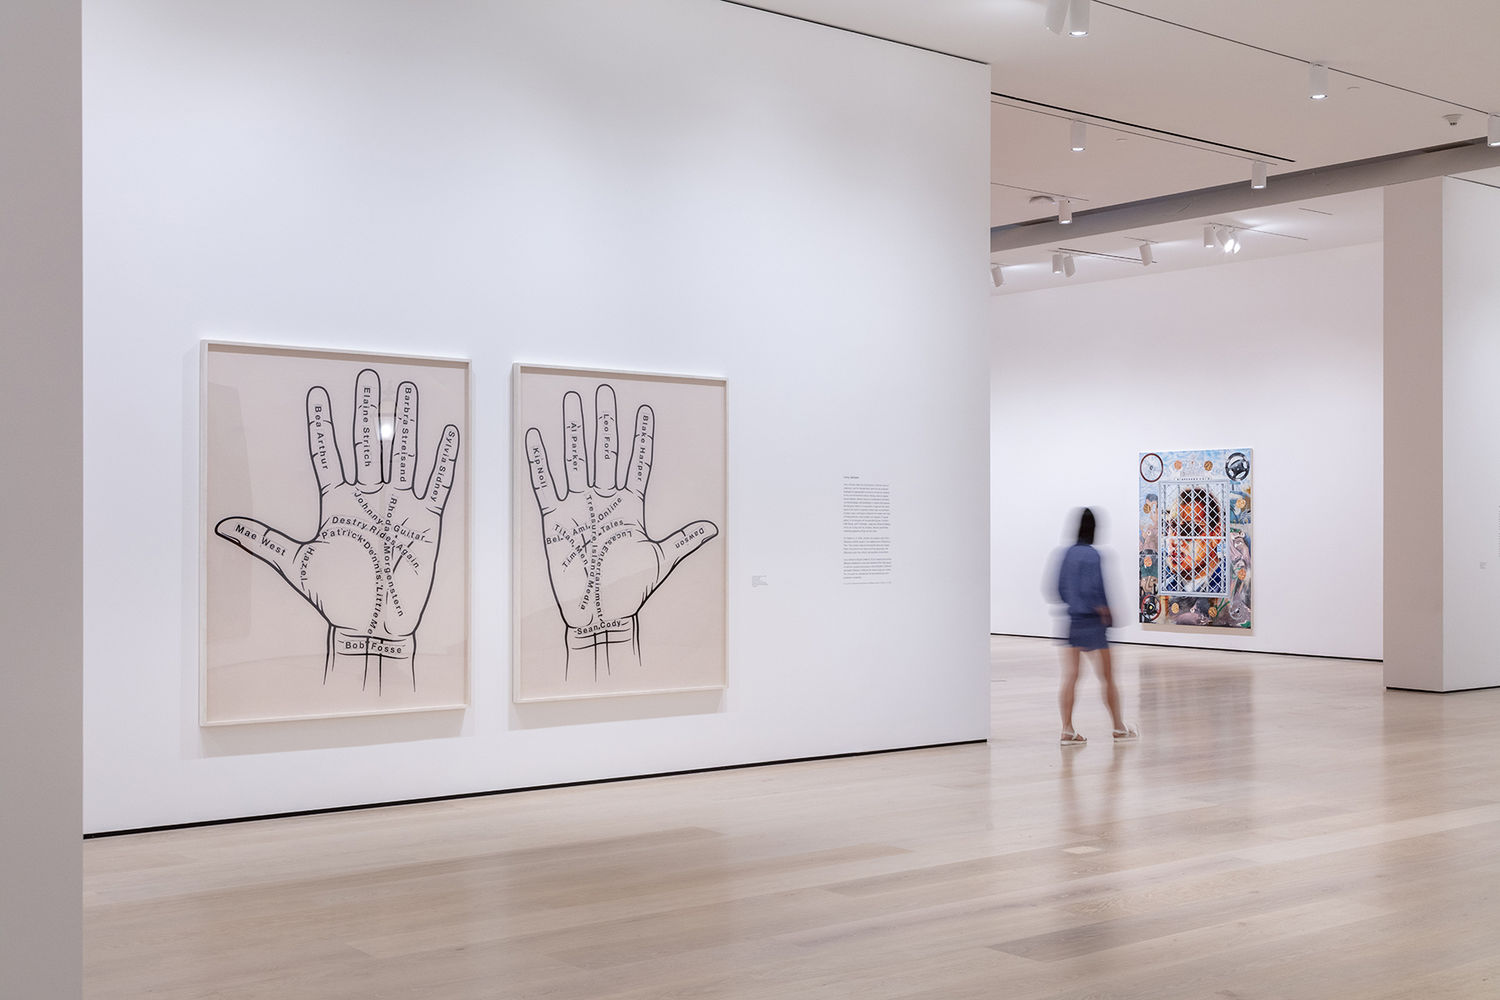 An image inside a white-walled gallery. To the left of the image are two photographs, with a left and right palm in each photo. There are various names written on the palms. In the background is one painting rendered in an airbrush, lowrider car style.